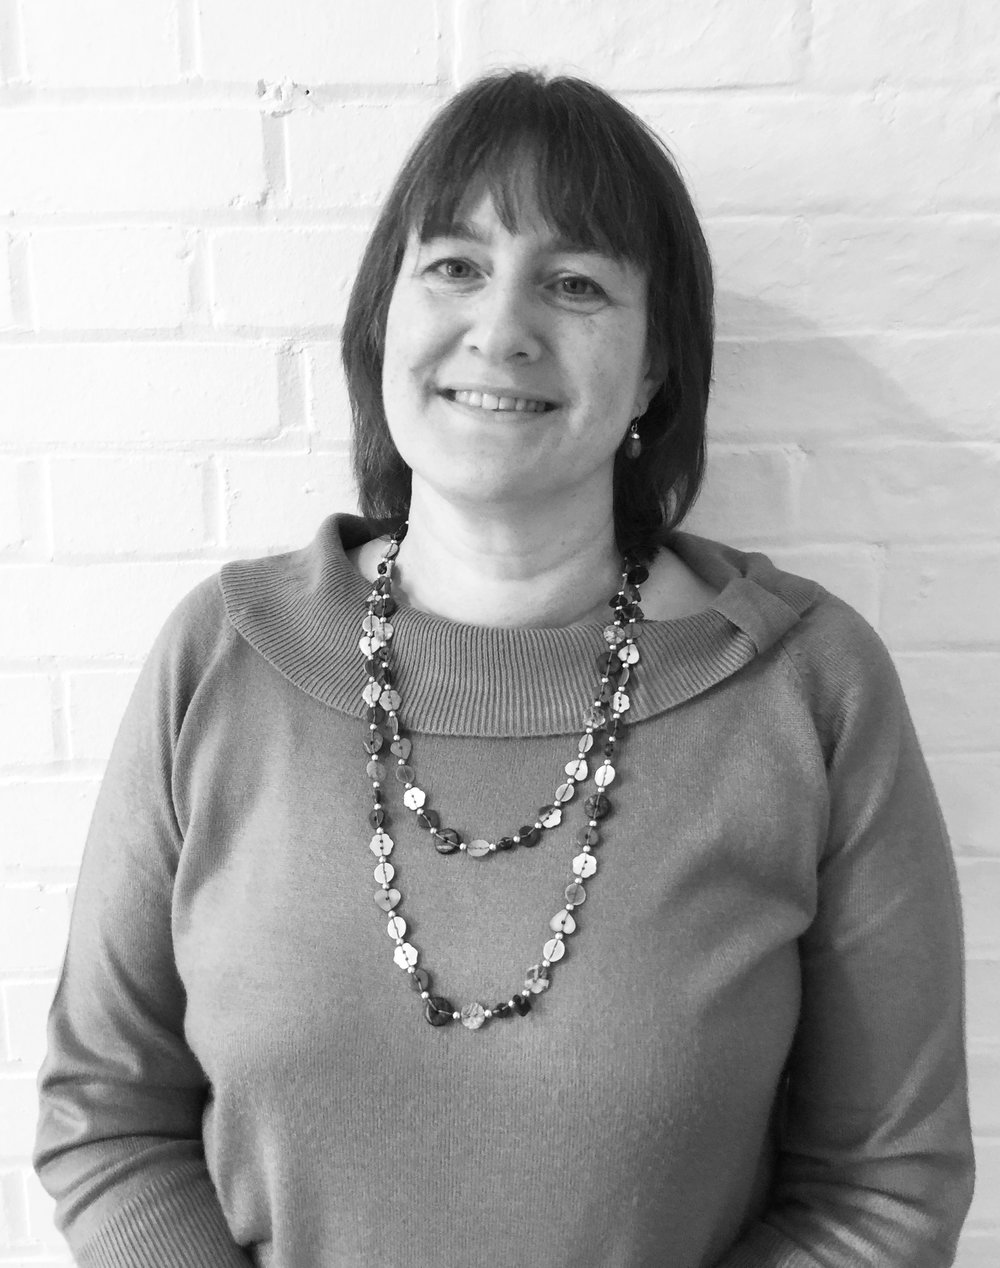 Tracy Todman,   Accountant and Book Keeper   Tracy is a chartered accountant with over 25 years' post qualification experience. She trained, qualified and spent her early professional years working for big firms in London but has been working on a freelance basis with growing, owner-managed businesses for the last 17 years.  Tracy deals with our payroll, in house accounting and project accounting. She lives in Saffron Walden with two teenage children, a snake and a hamster.